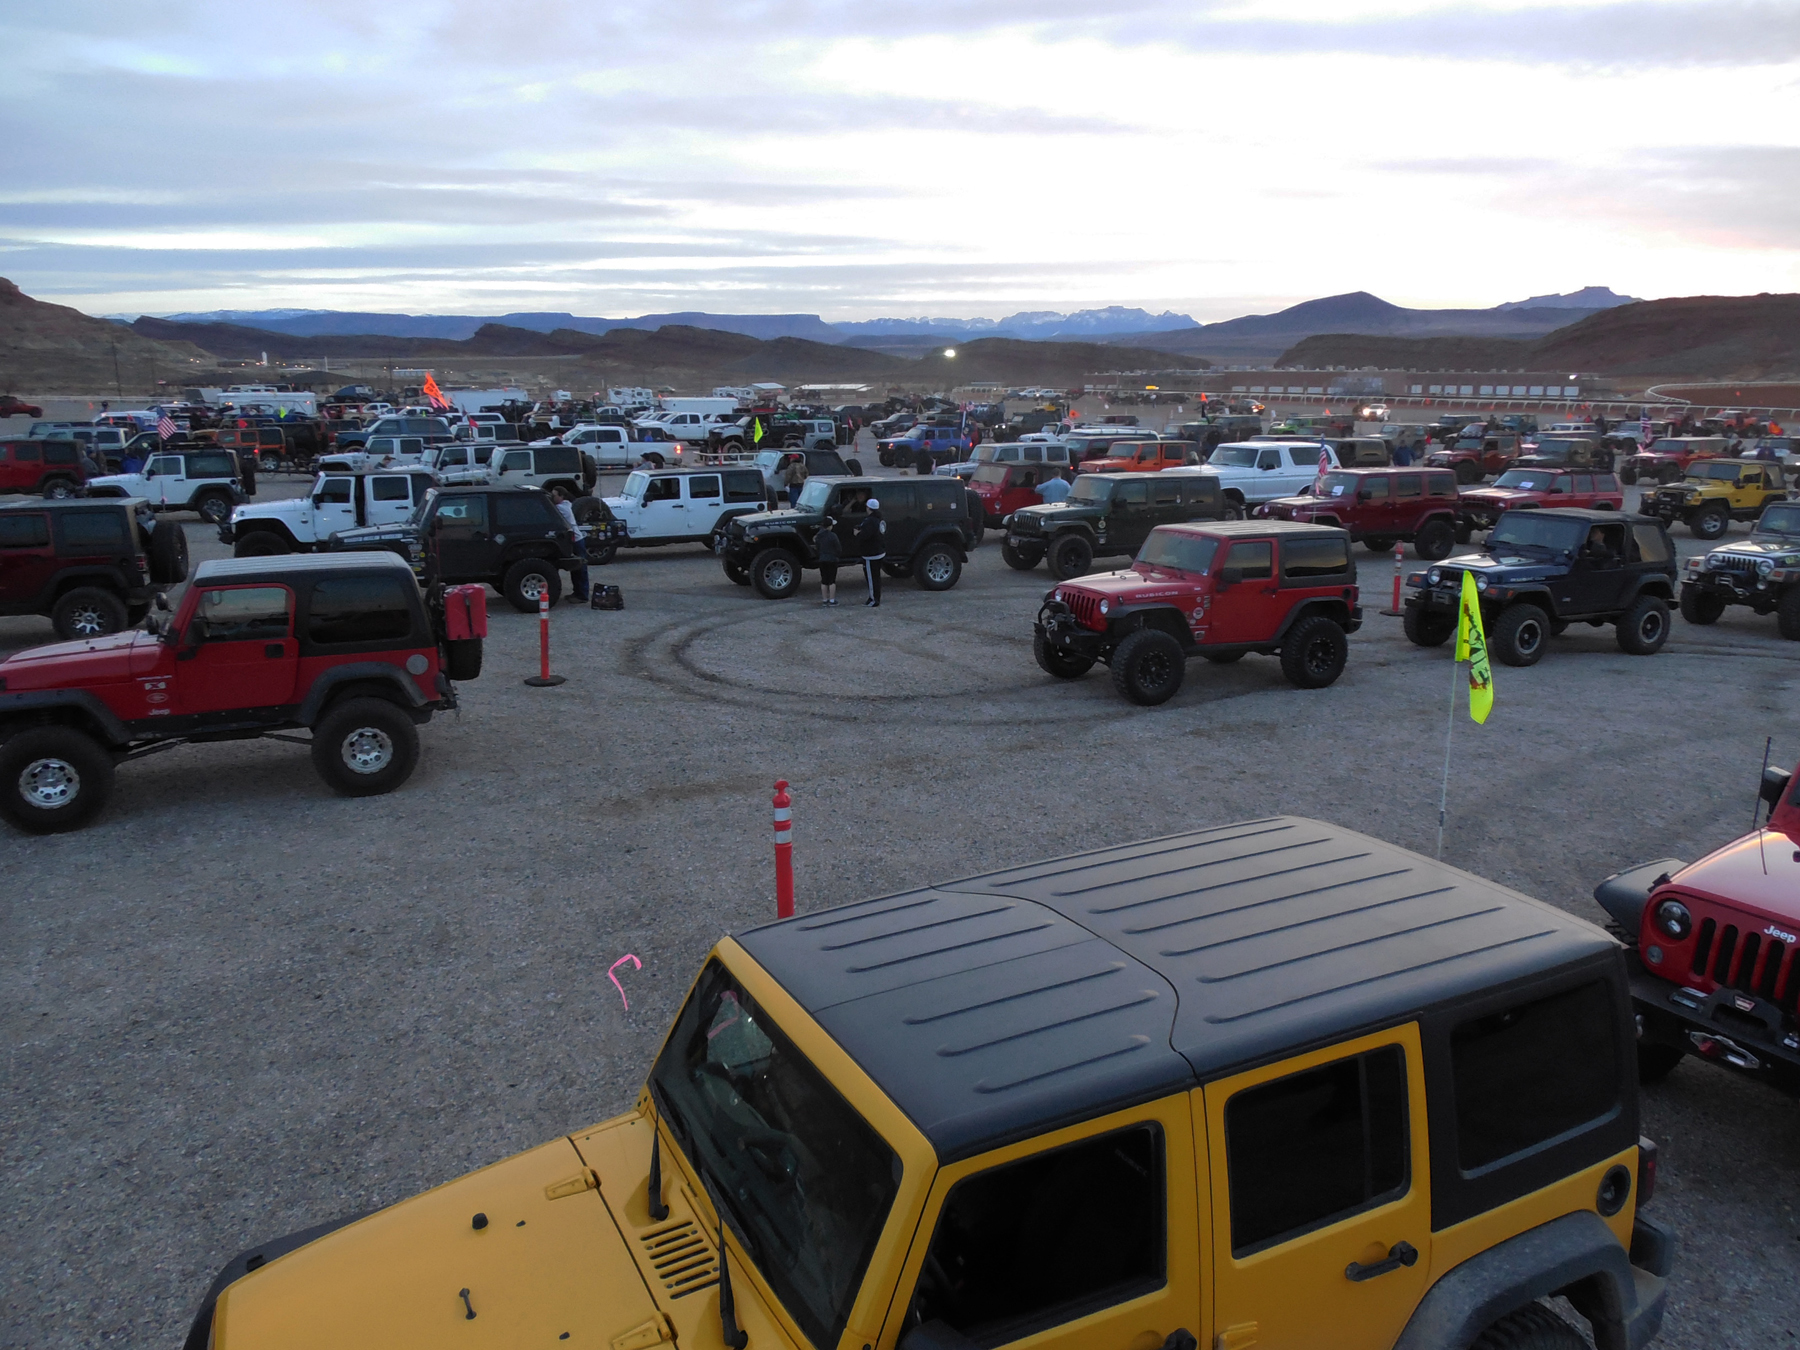 Participants in the 2016 Winter 4x4 Jamboree line up for trail runs, Hurricane, Utah, Jan. 22, 2016 | Photo courtesy of Desert Roads and Trails Society, St. George News